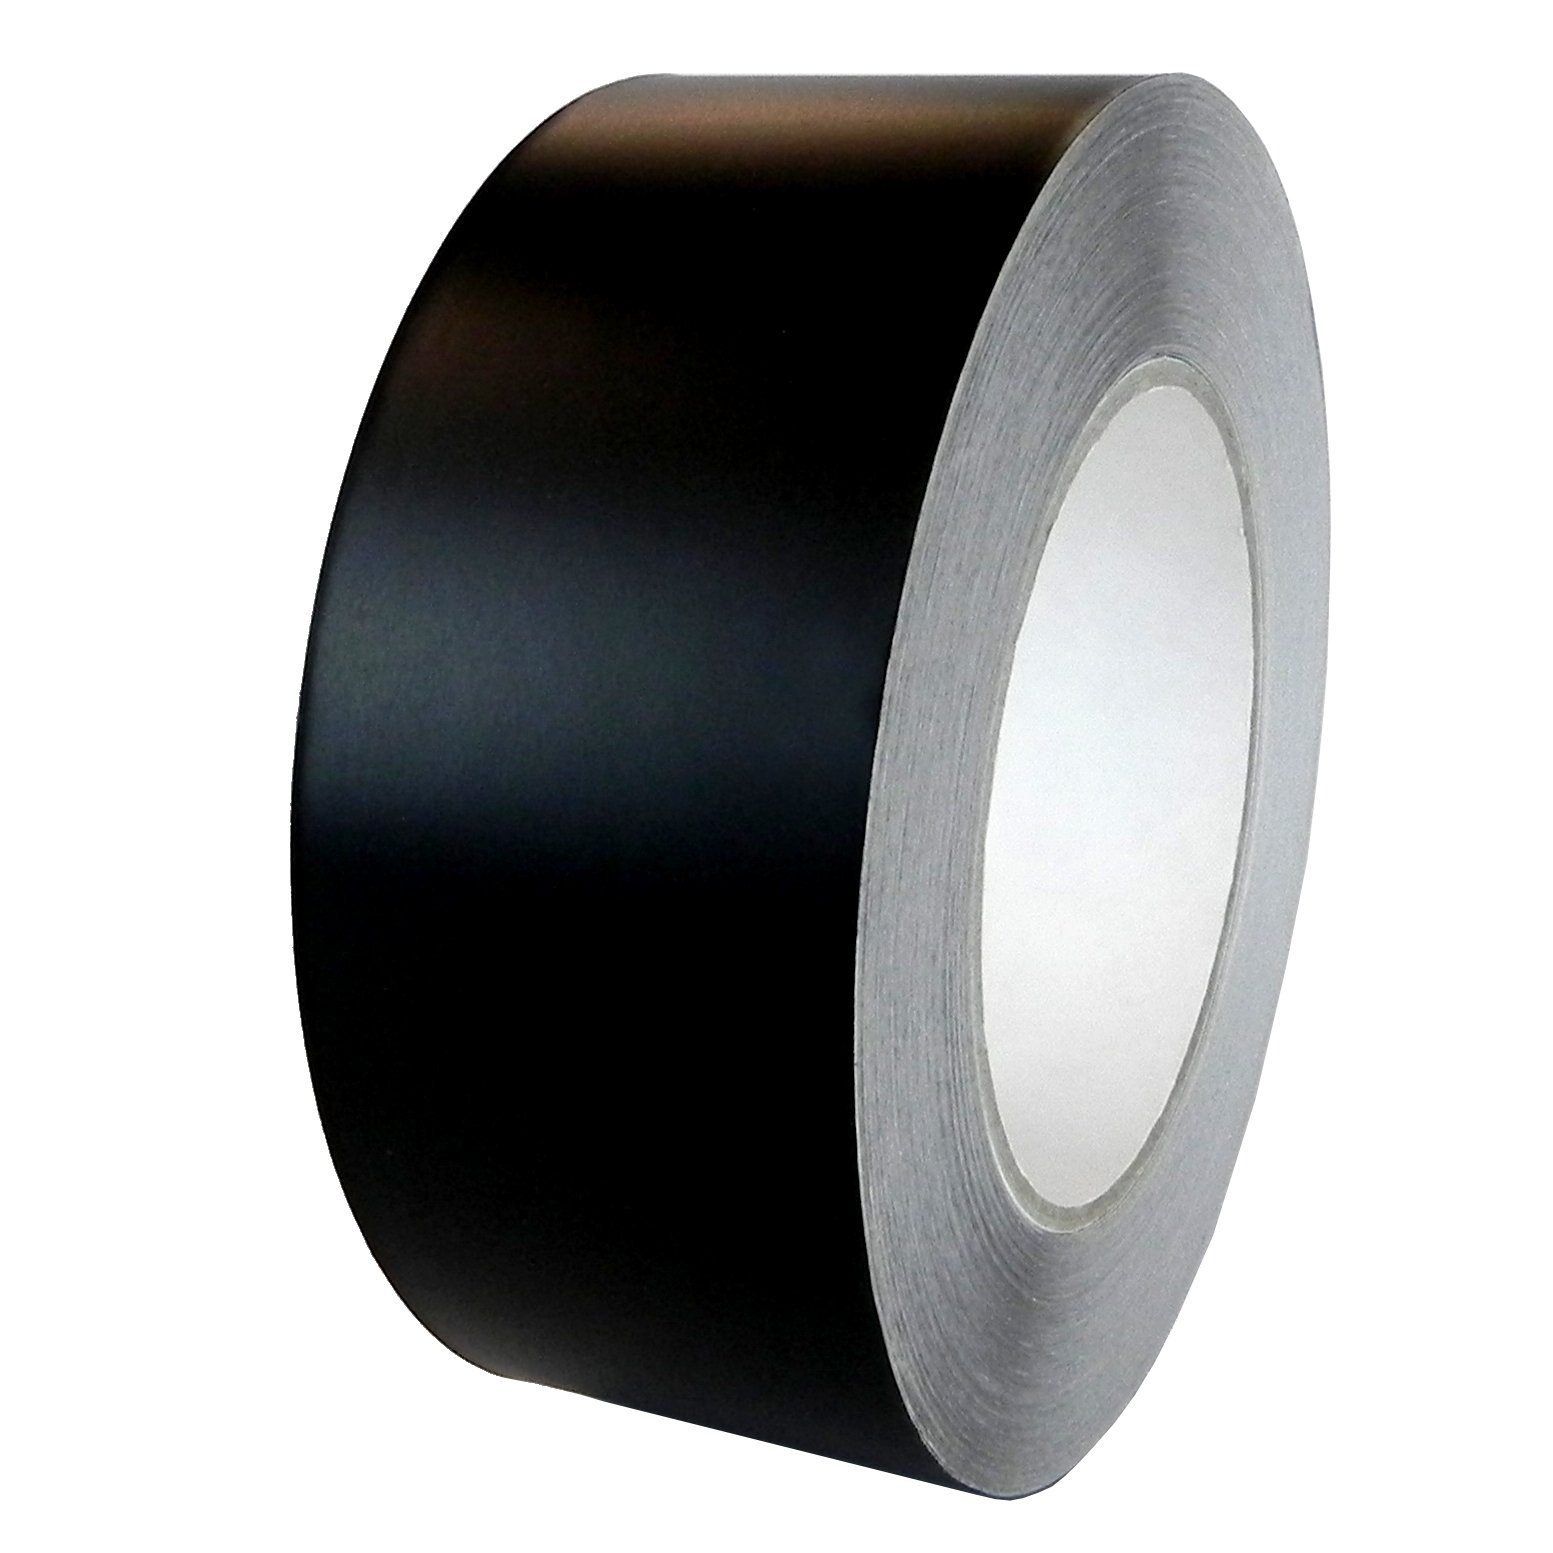 T.R.U. AF-22A-B Aluminum Foil Black Matte Tape Non Reflective with Acrylic Adhesive. Available in Multiple Sizes (2'' X 55 Yards (50Mts) Pack of 3)